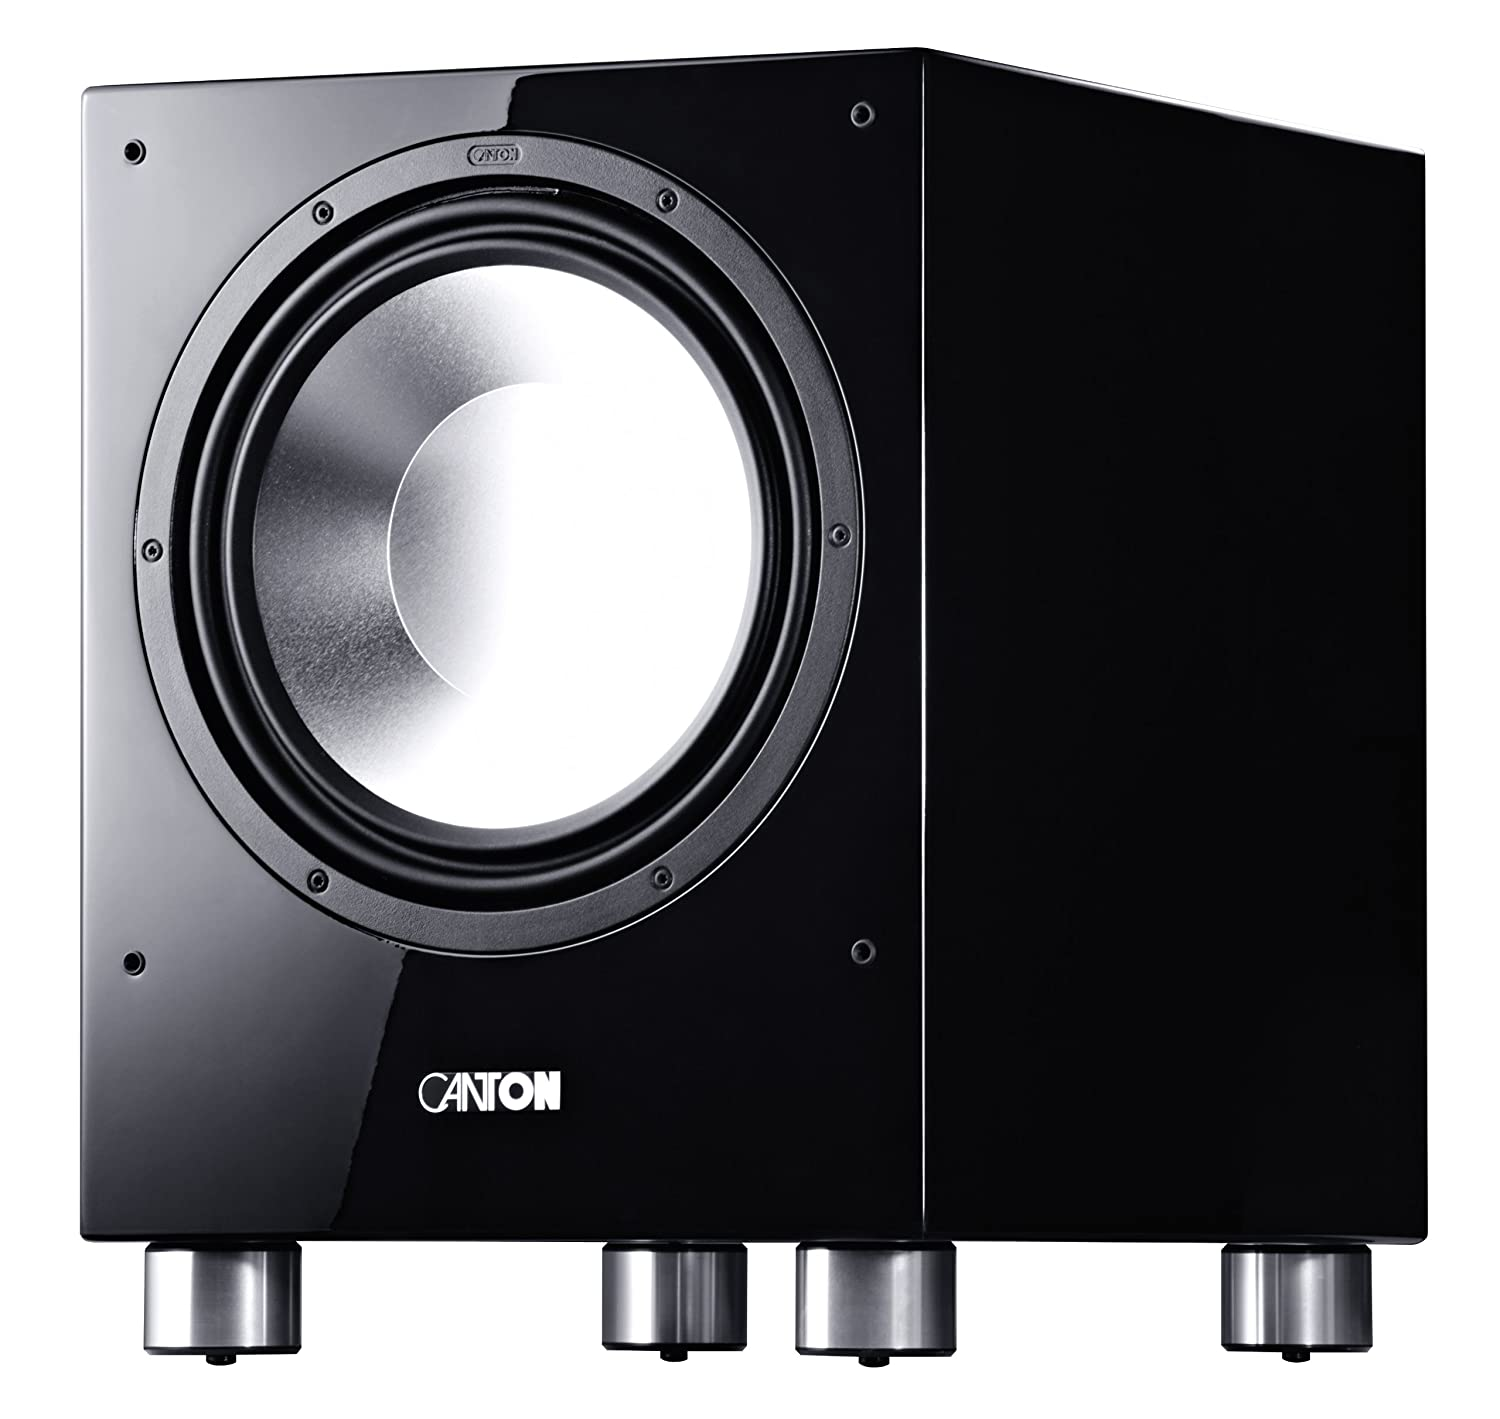 High End Subwoofer, High End Sub, Bester Subwoofer,Top Subwoofer, High End Subwoofer Test, Canton Sub 1200 R